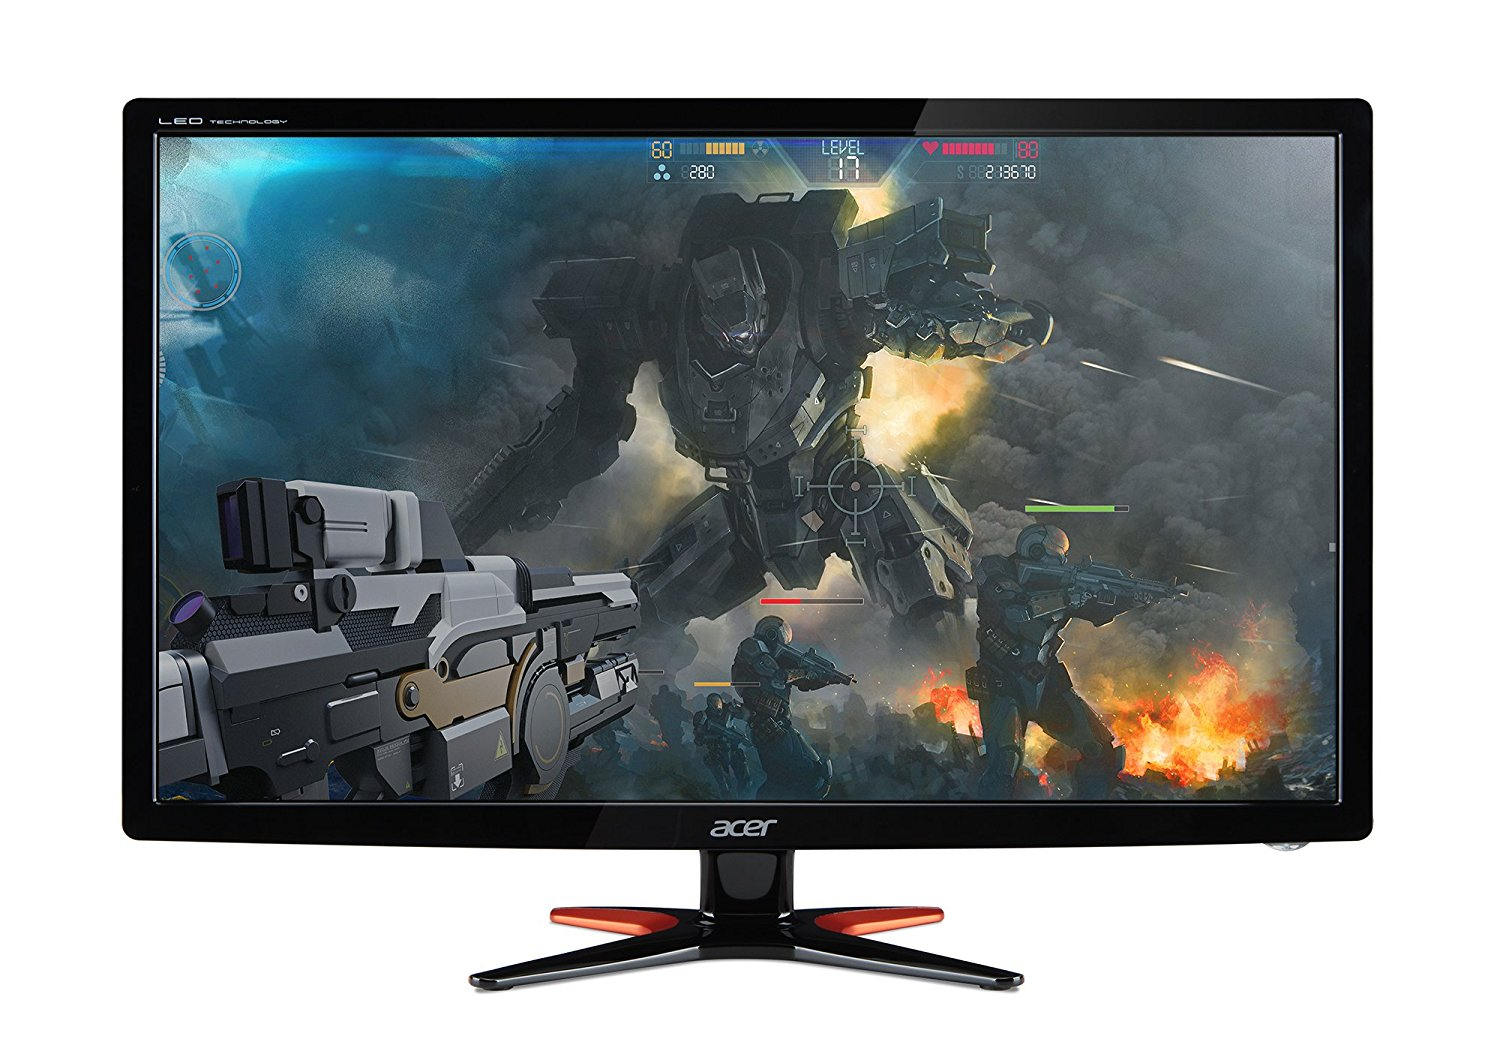 Acer 24-Inch 3D Gaming Display